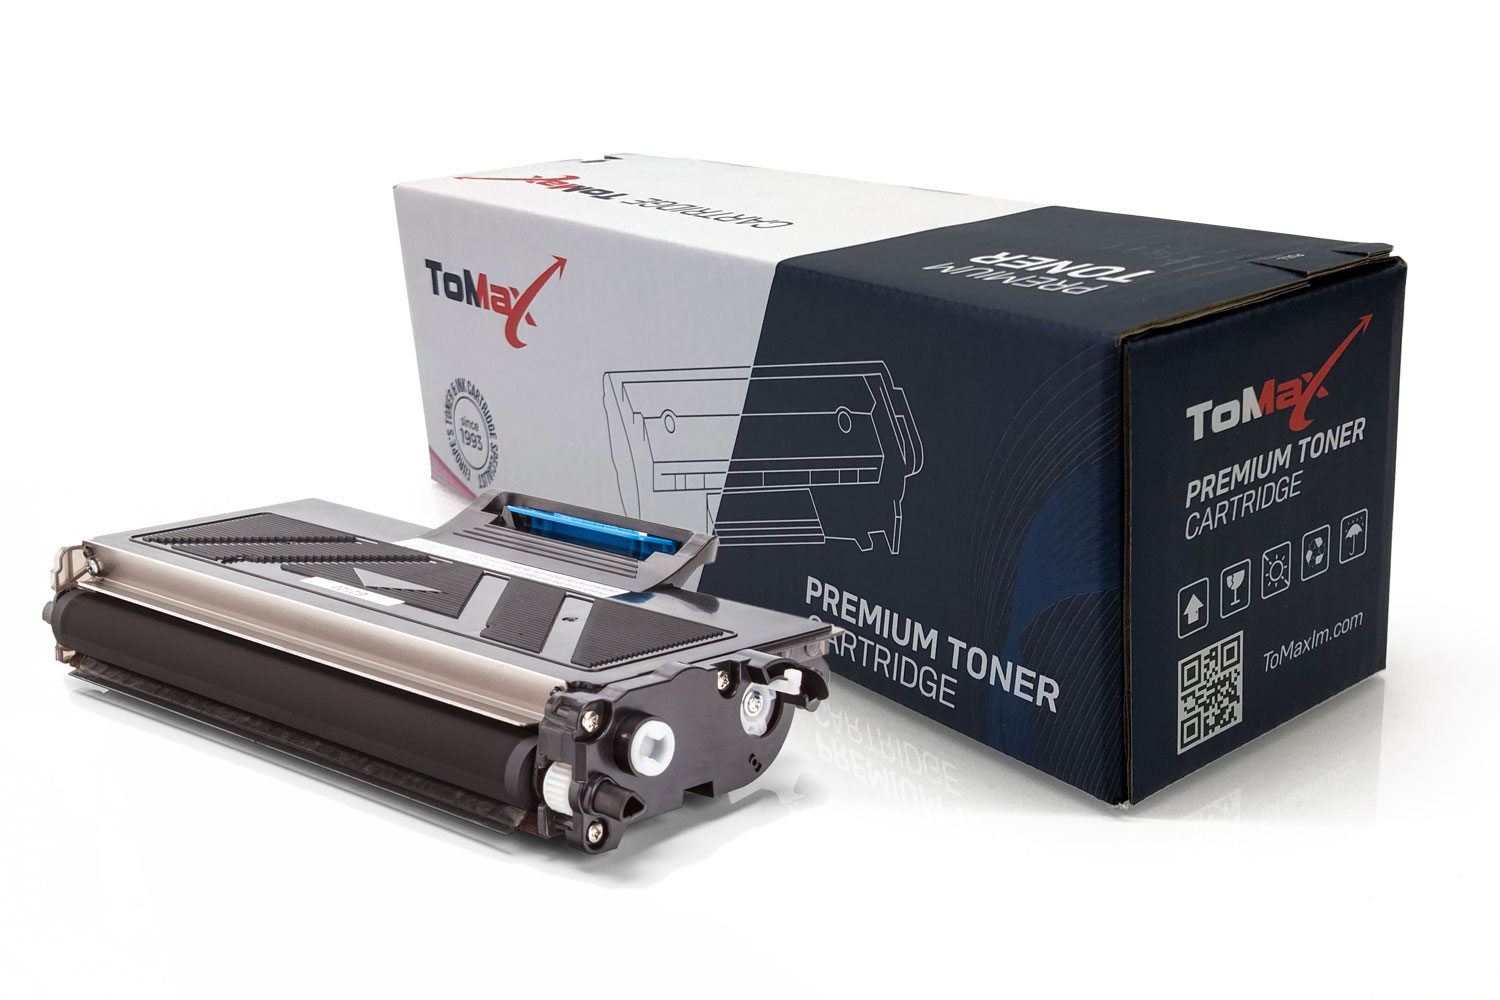 ToMax Premium Toner Cartridge replaces HP CC533A / 304A Magenta